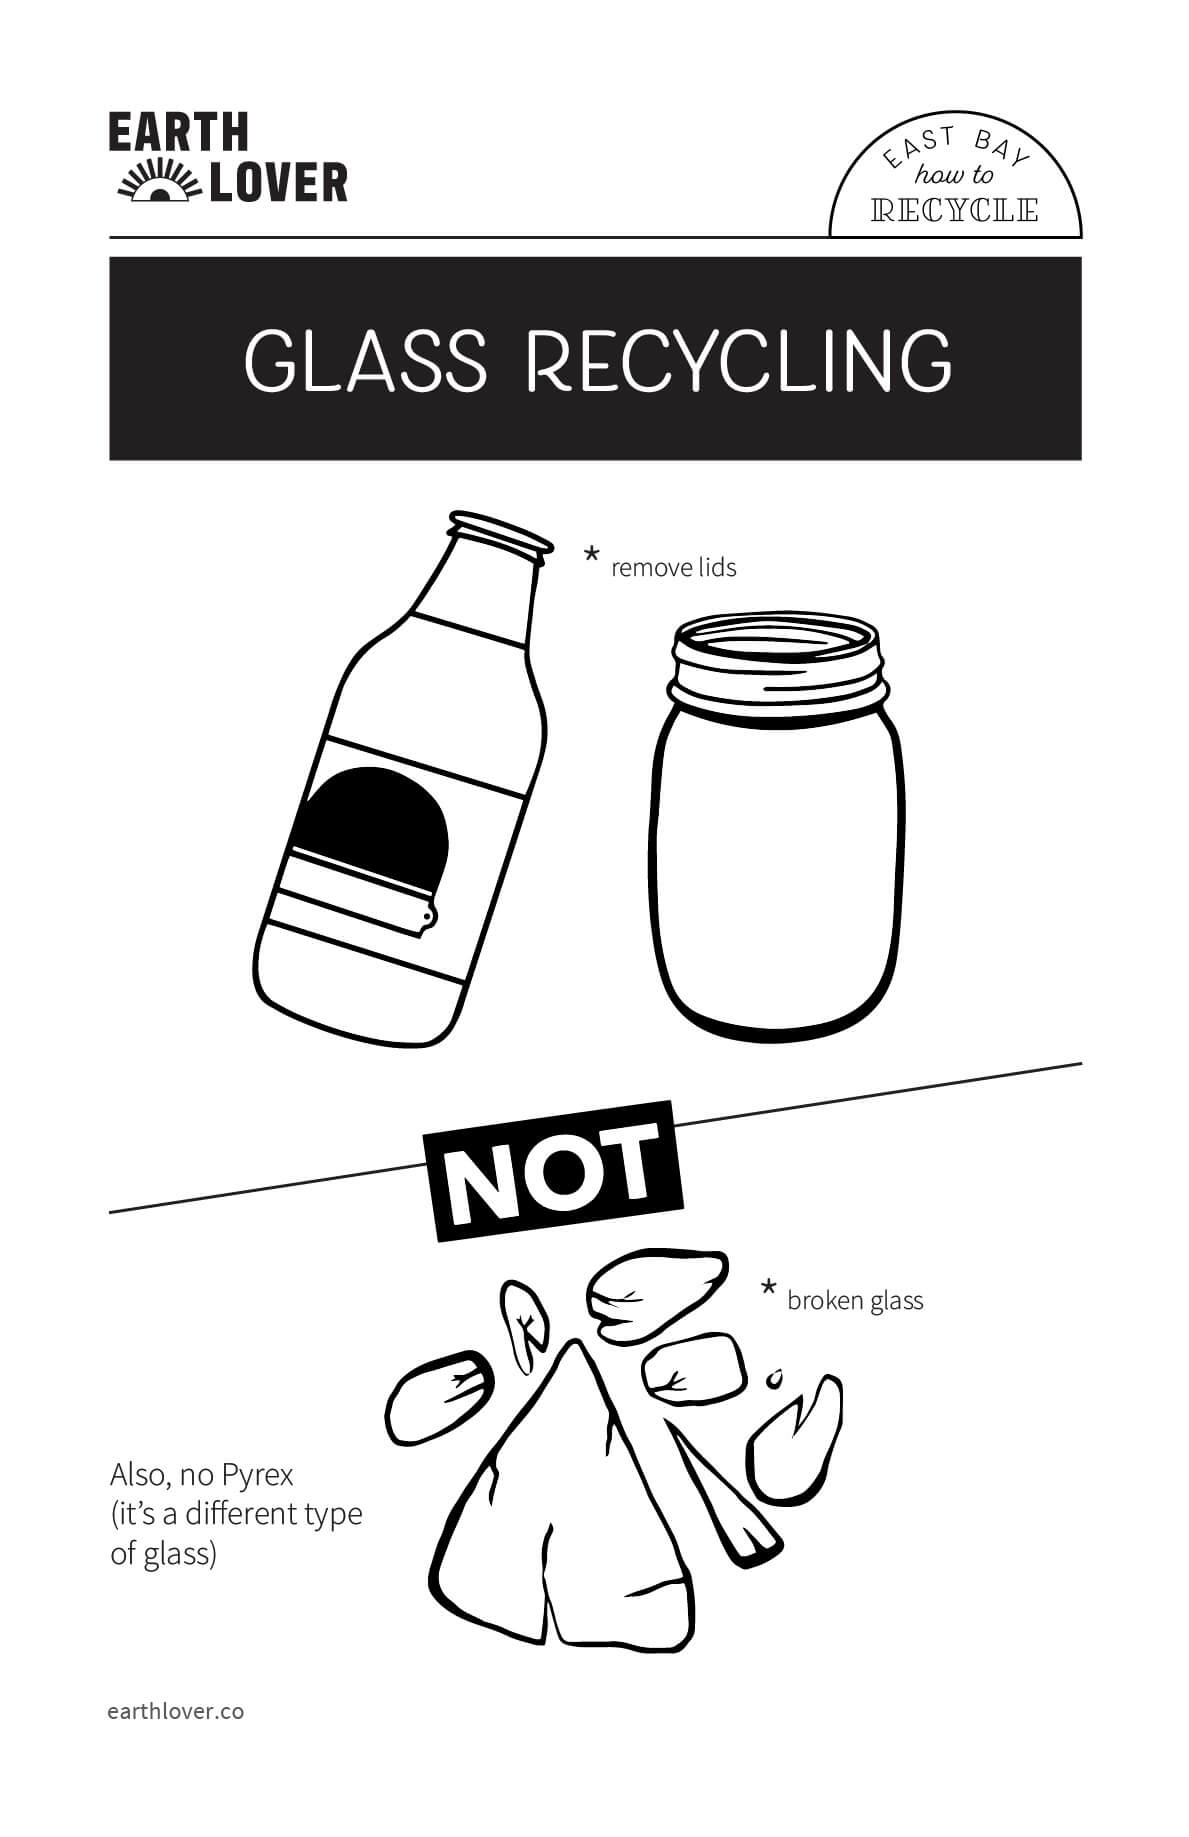 Glass recycling guide